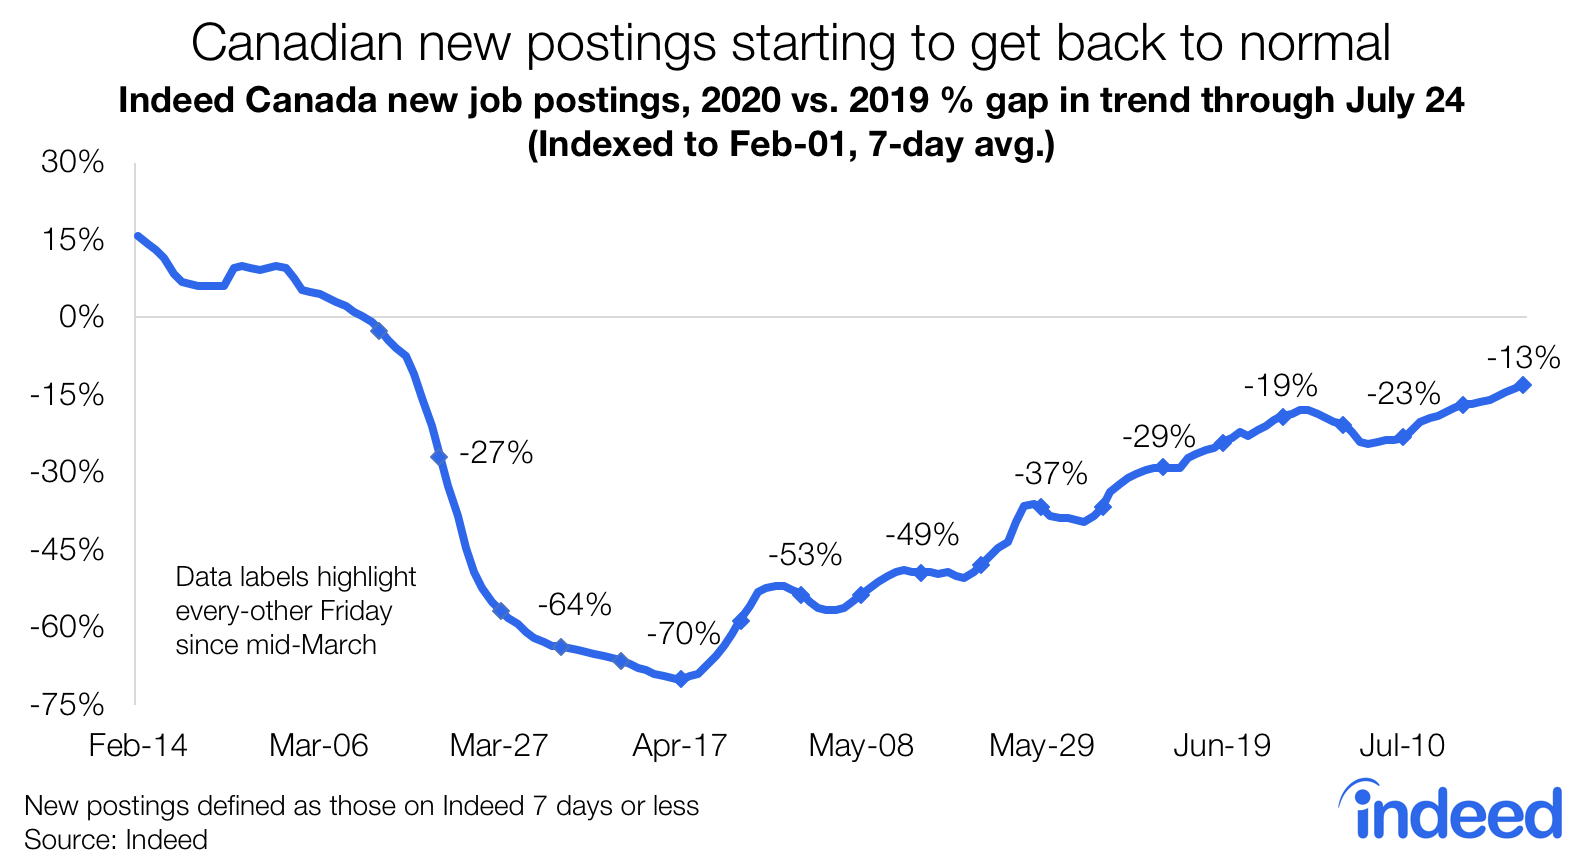 Canadian new postings starting to get back to normal